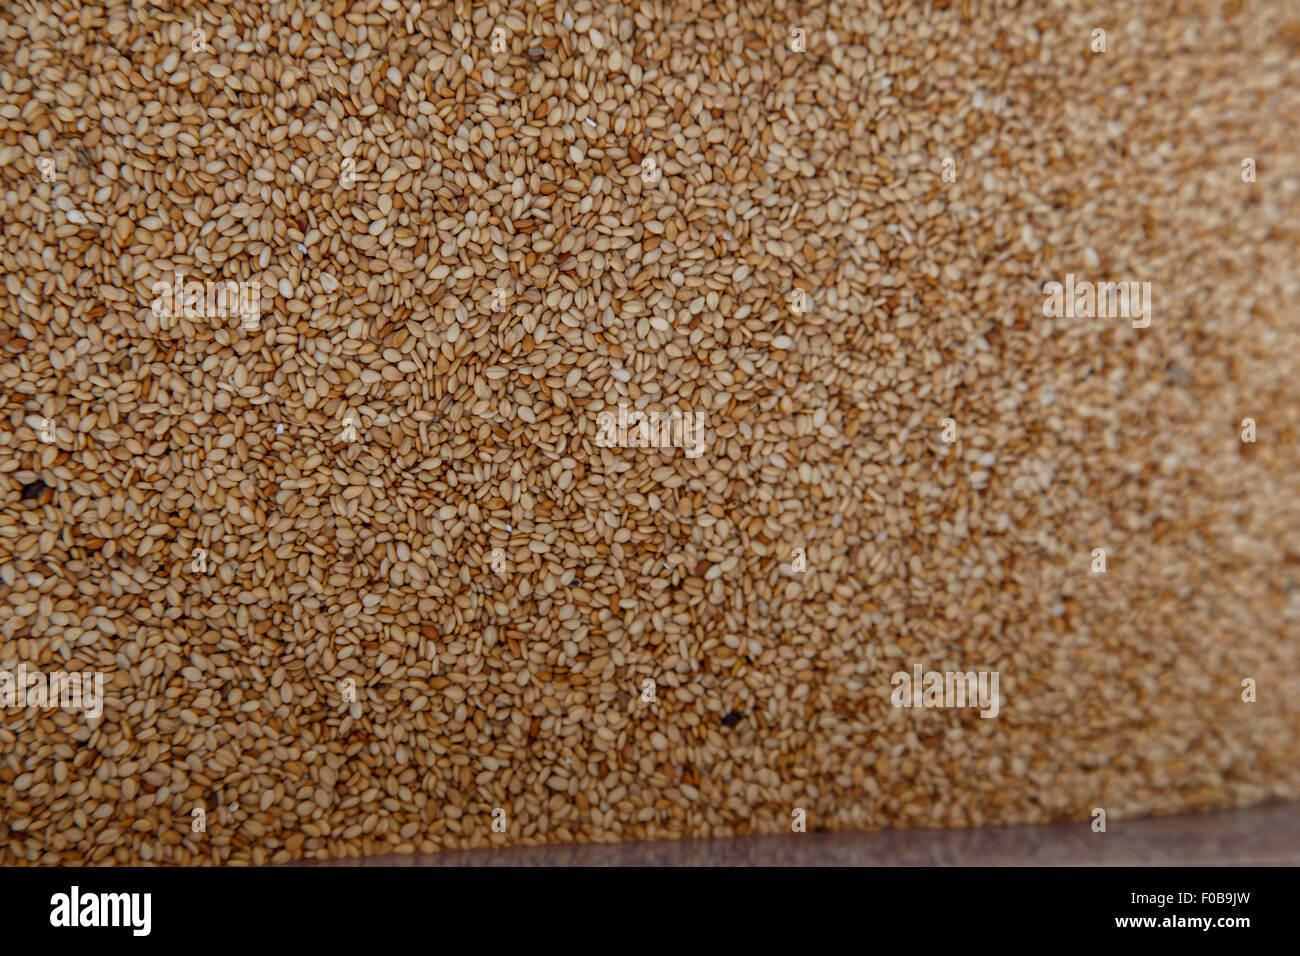 Closeup of lots of toasted sesame seeds - Stock Image